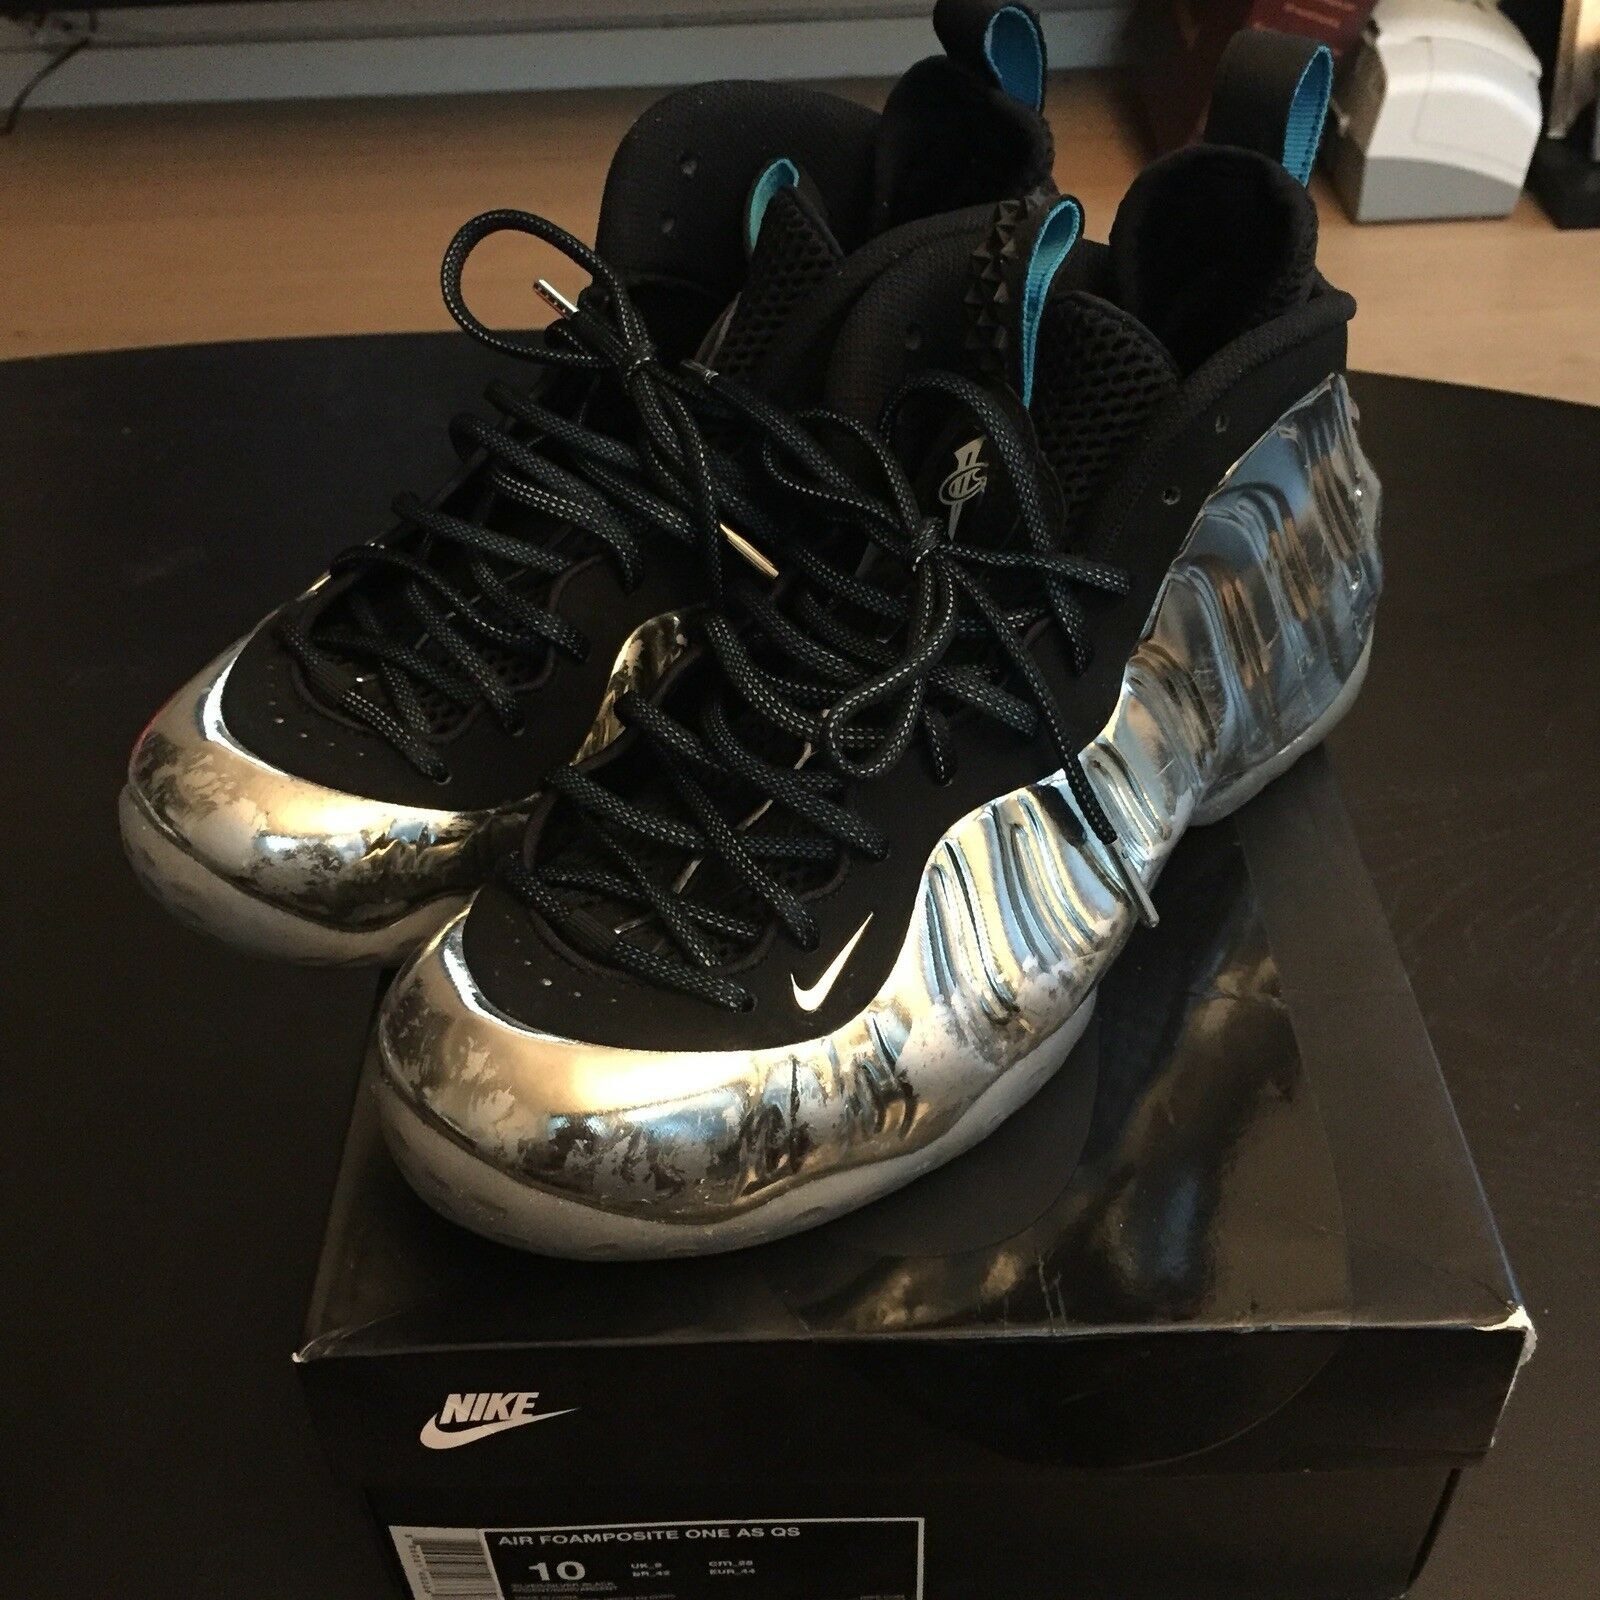 NIKE AIR FOAMPOSITE ONE AS QS CHROMEPOSITE, Sz 10 (USED)